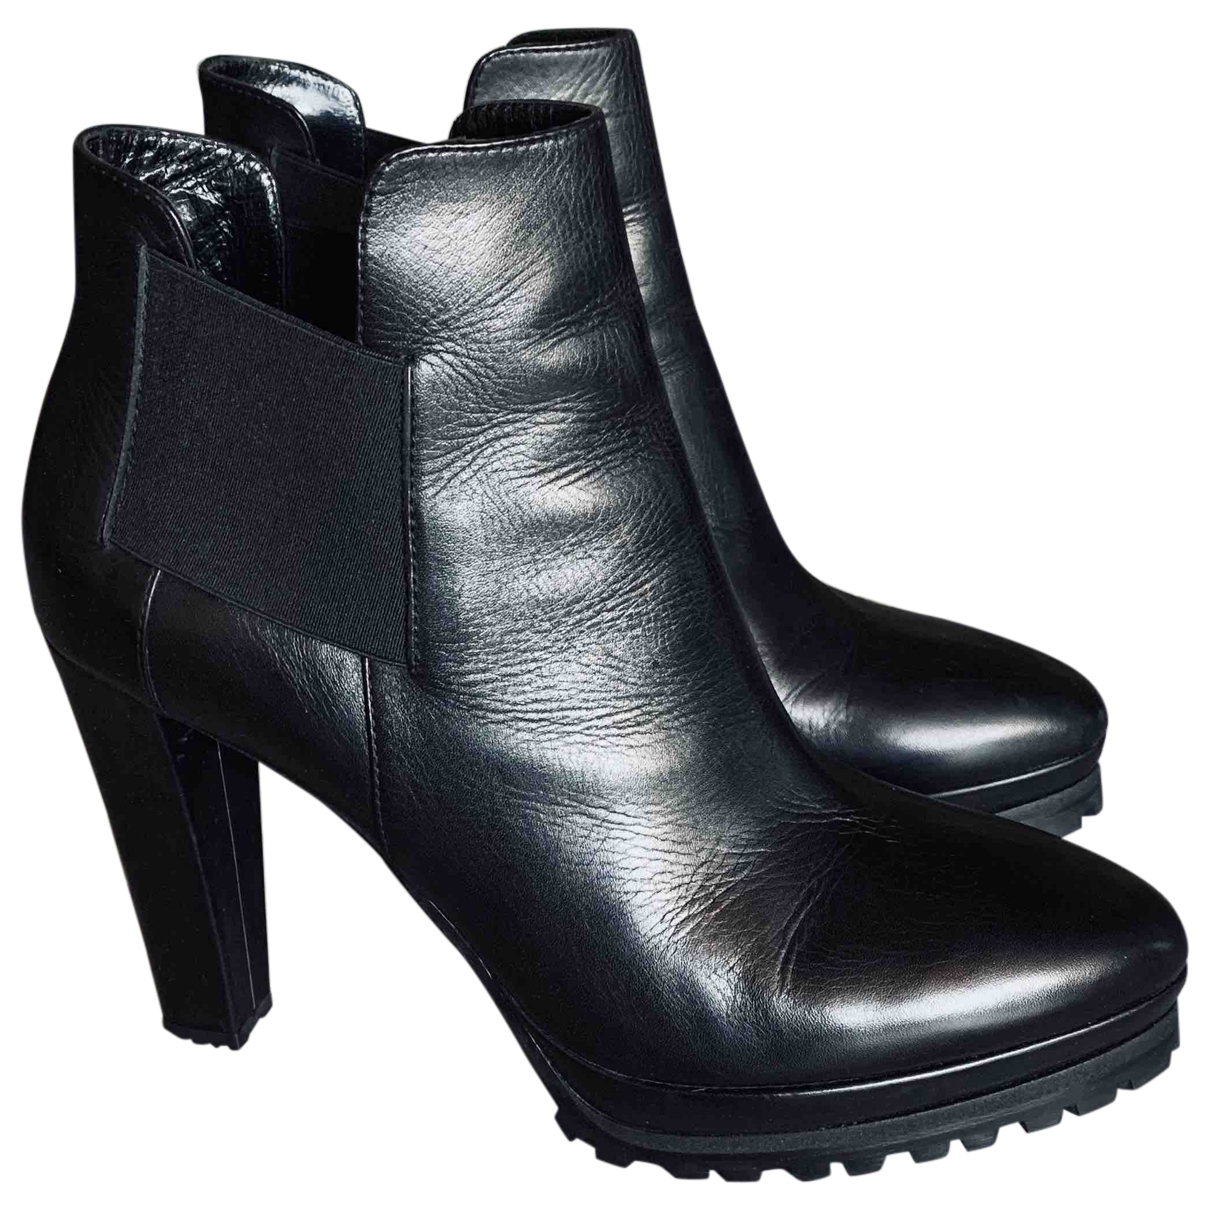 All Saints \N Black Leather Ankle boots for Women 41 EU